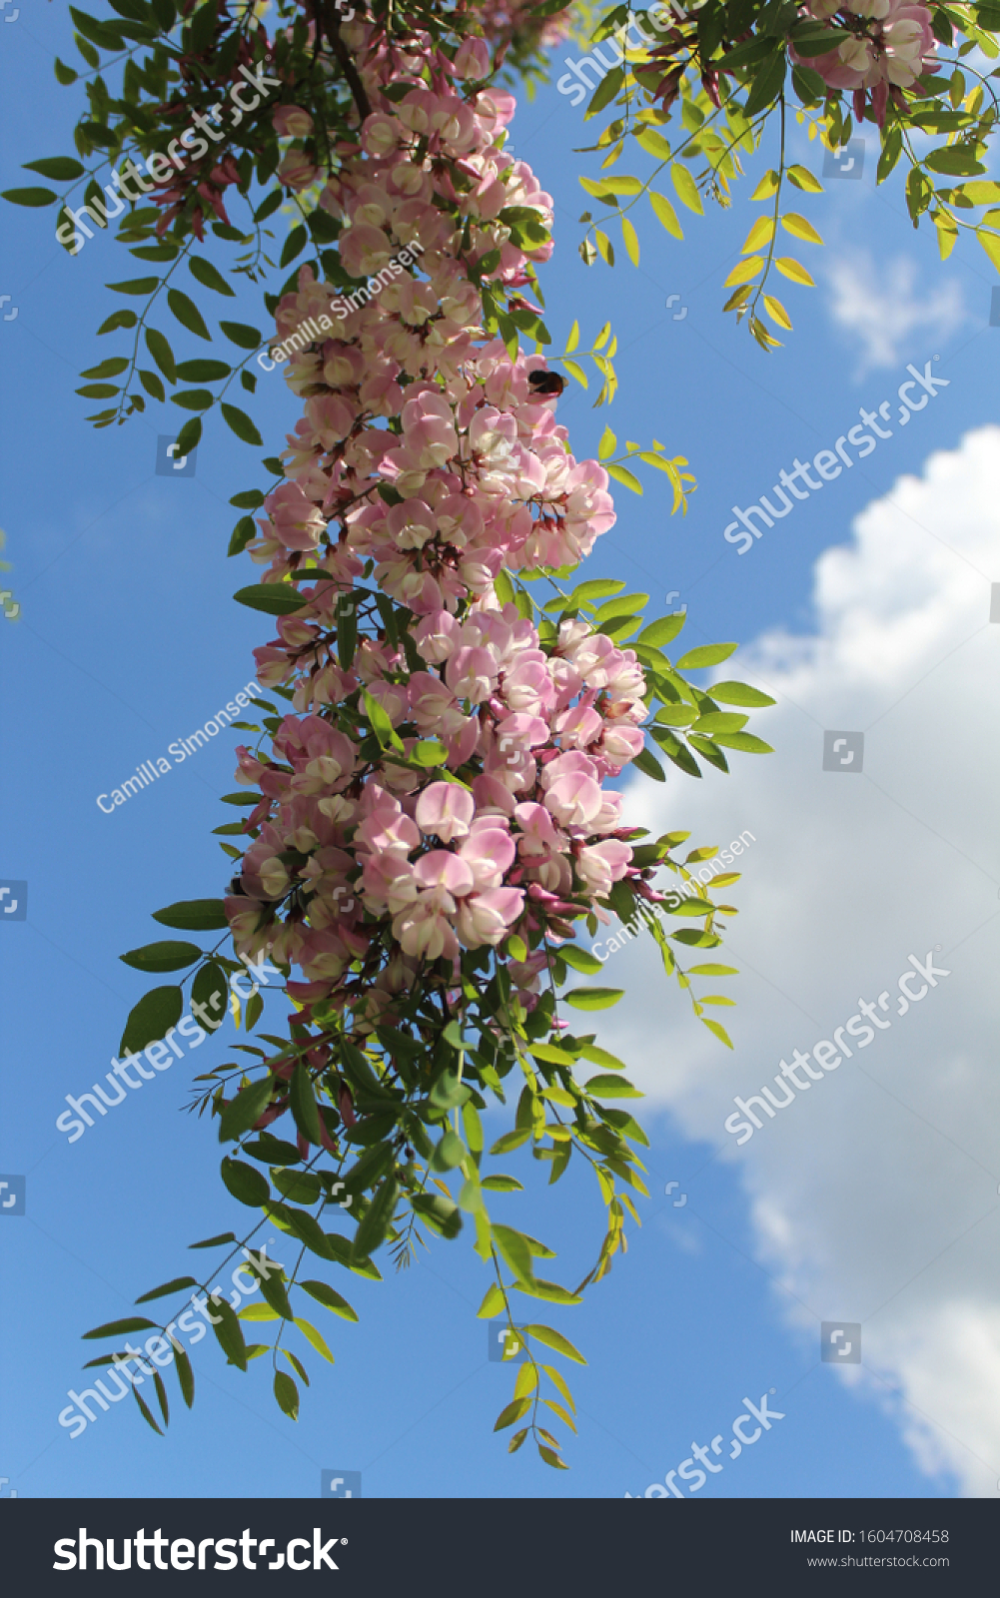 Acacia Tree With Beautiful Pink Flowers Blue Sky And A White Cloud In 2020 Beautiful Pink Flowers Beautiful Tree Acacia Tree